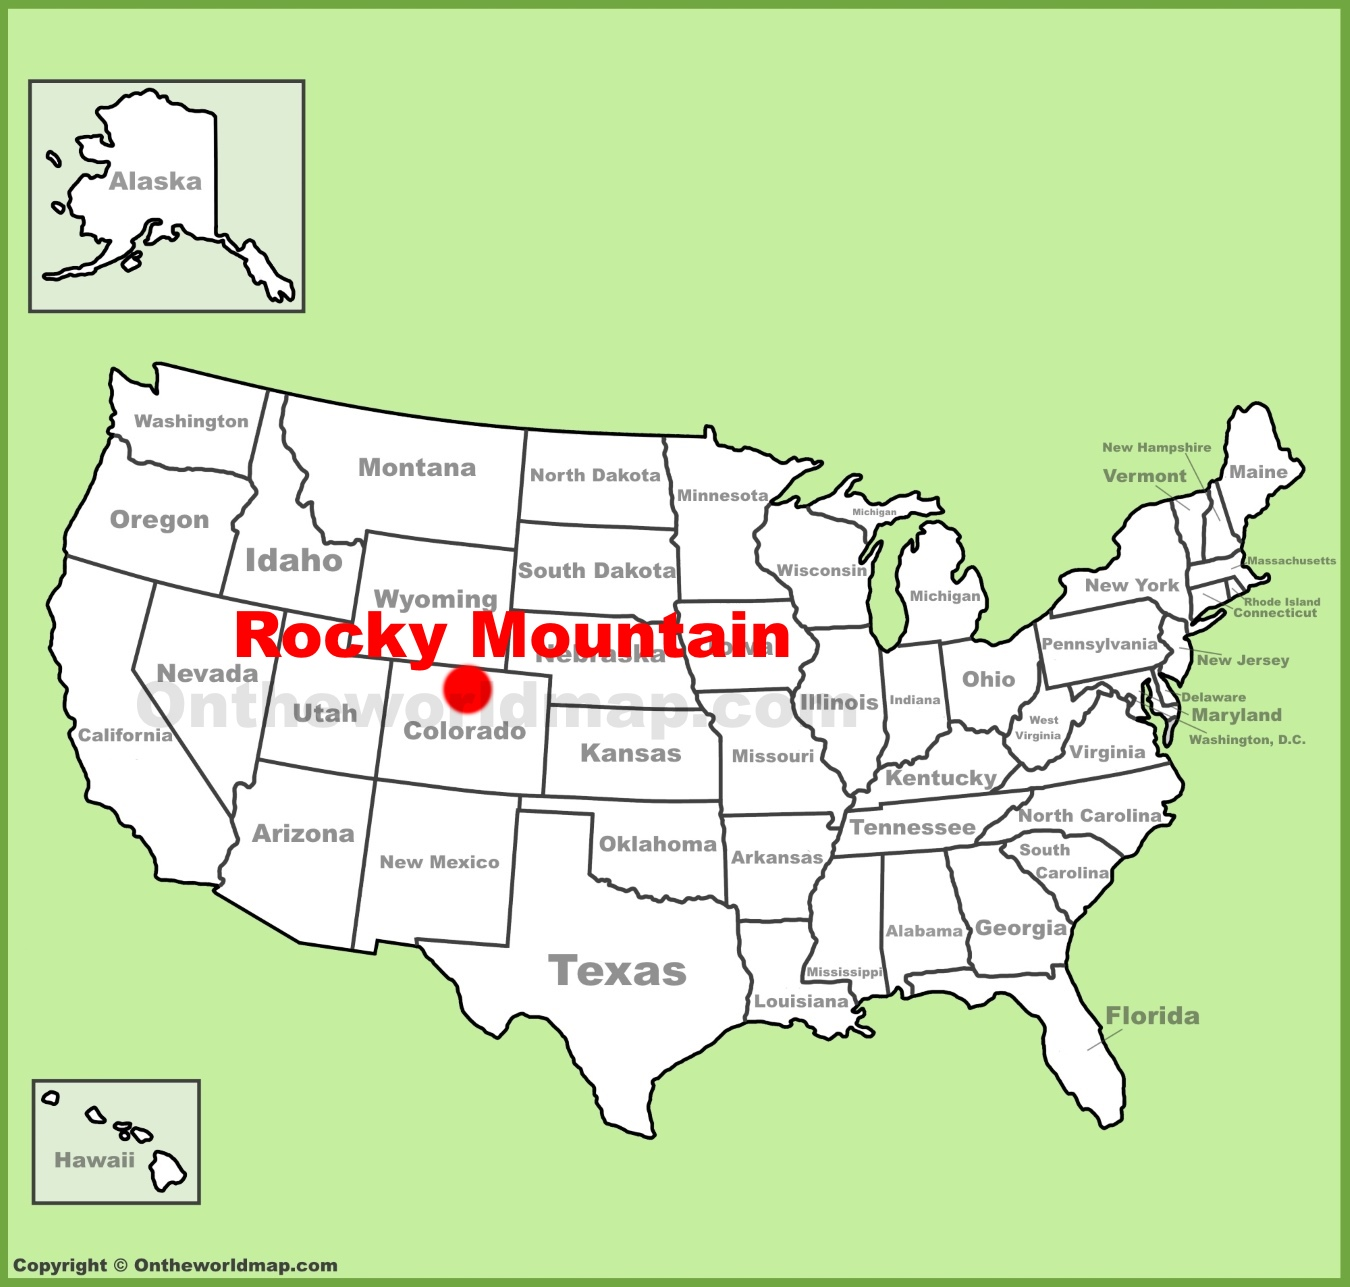 Rocky Mountain National Park Location On The US Map - Map of mountains in us